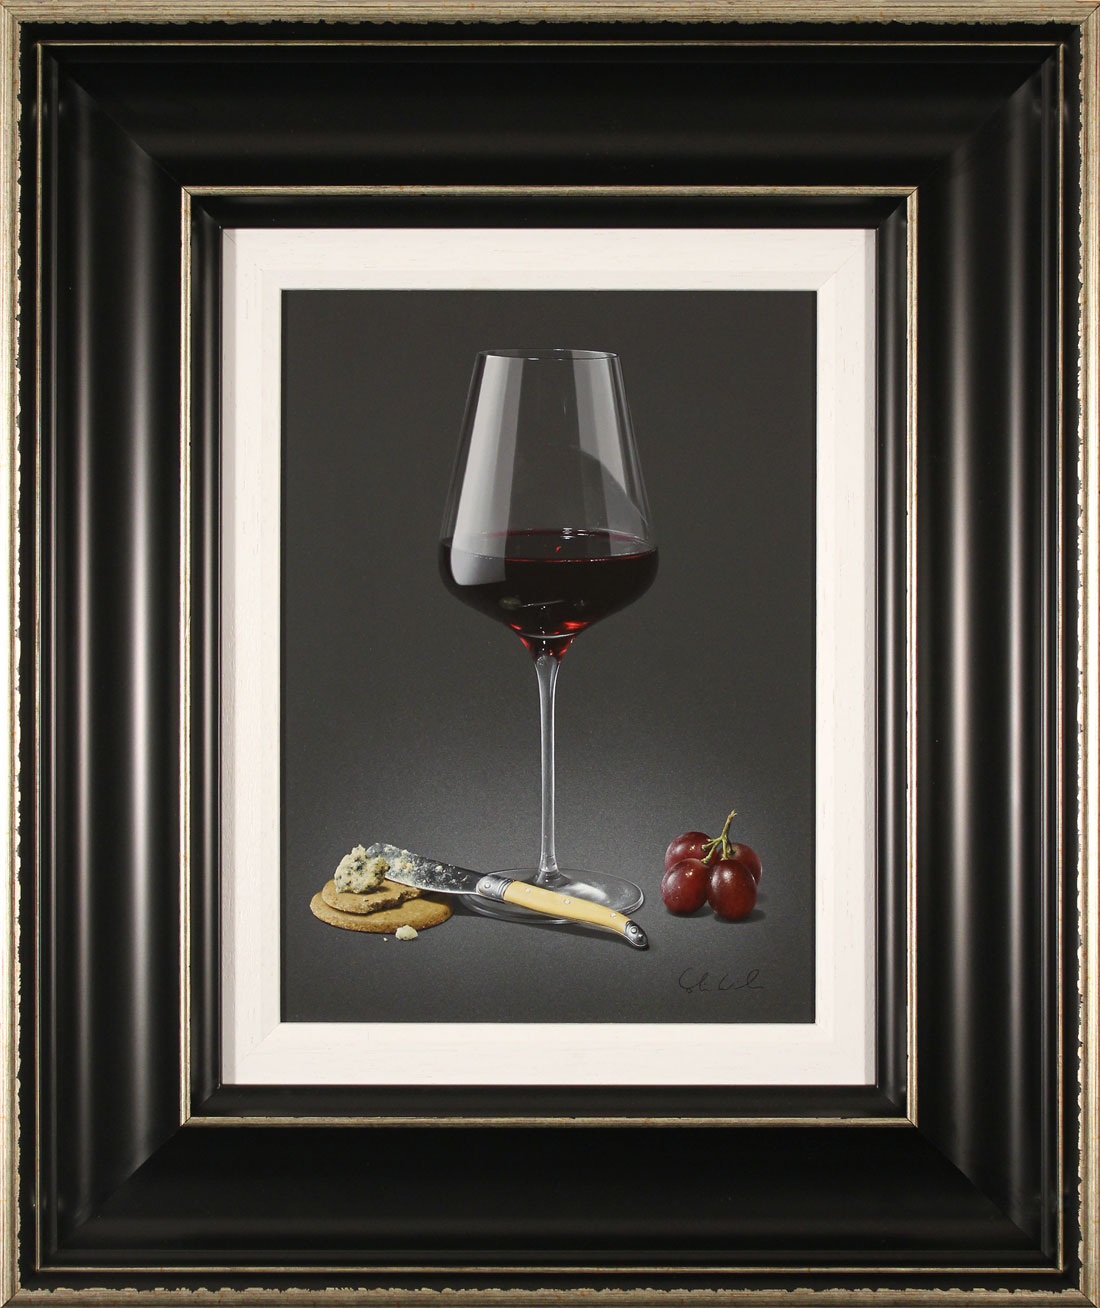 Colin Wilson, Original acrylic painting on board, Red Wine and Stilton, click to enlarge